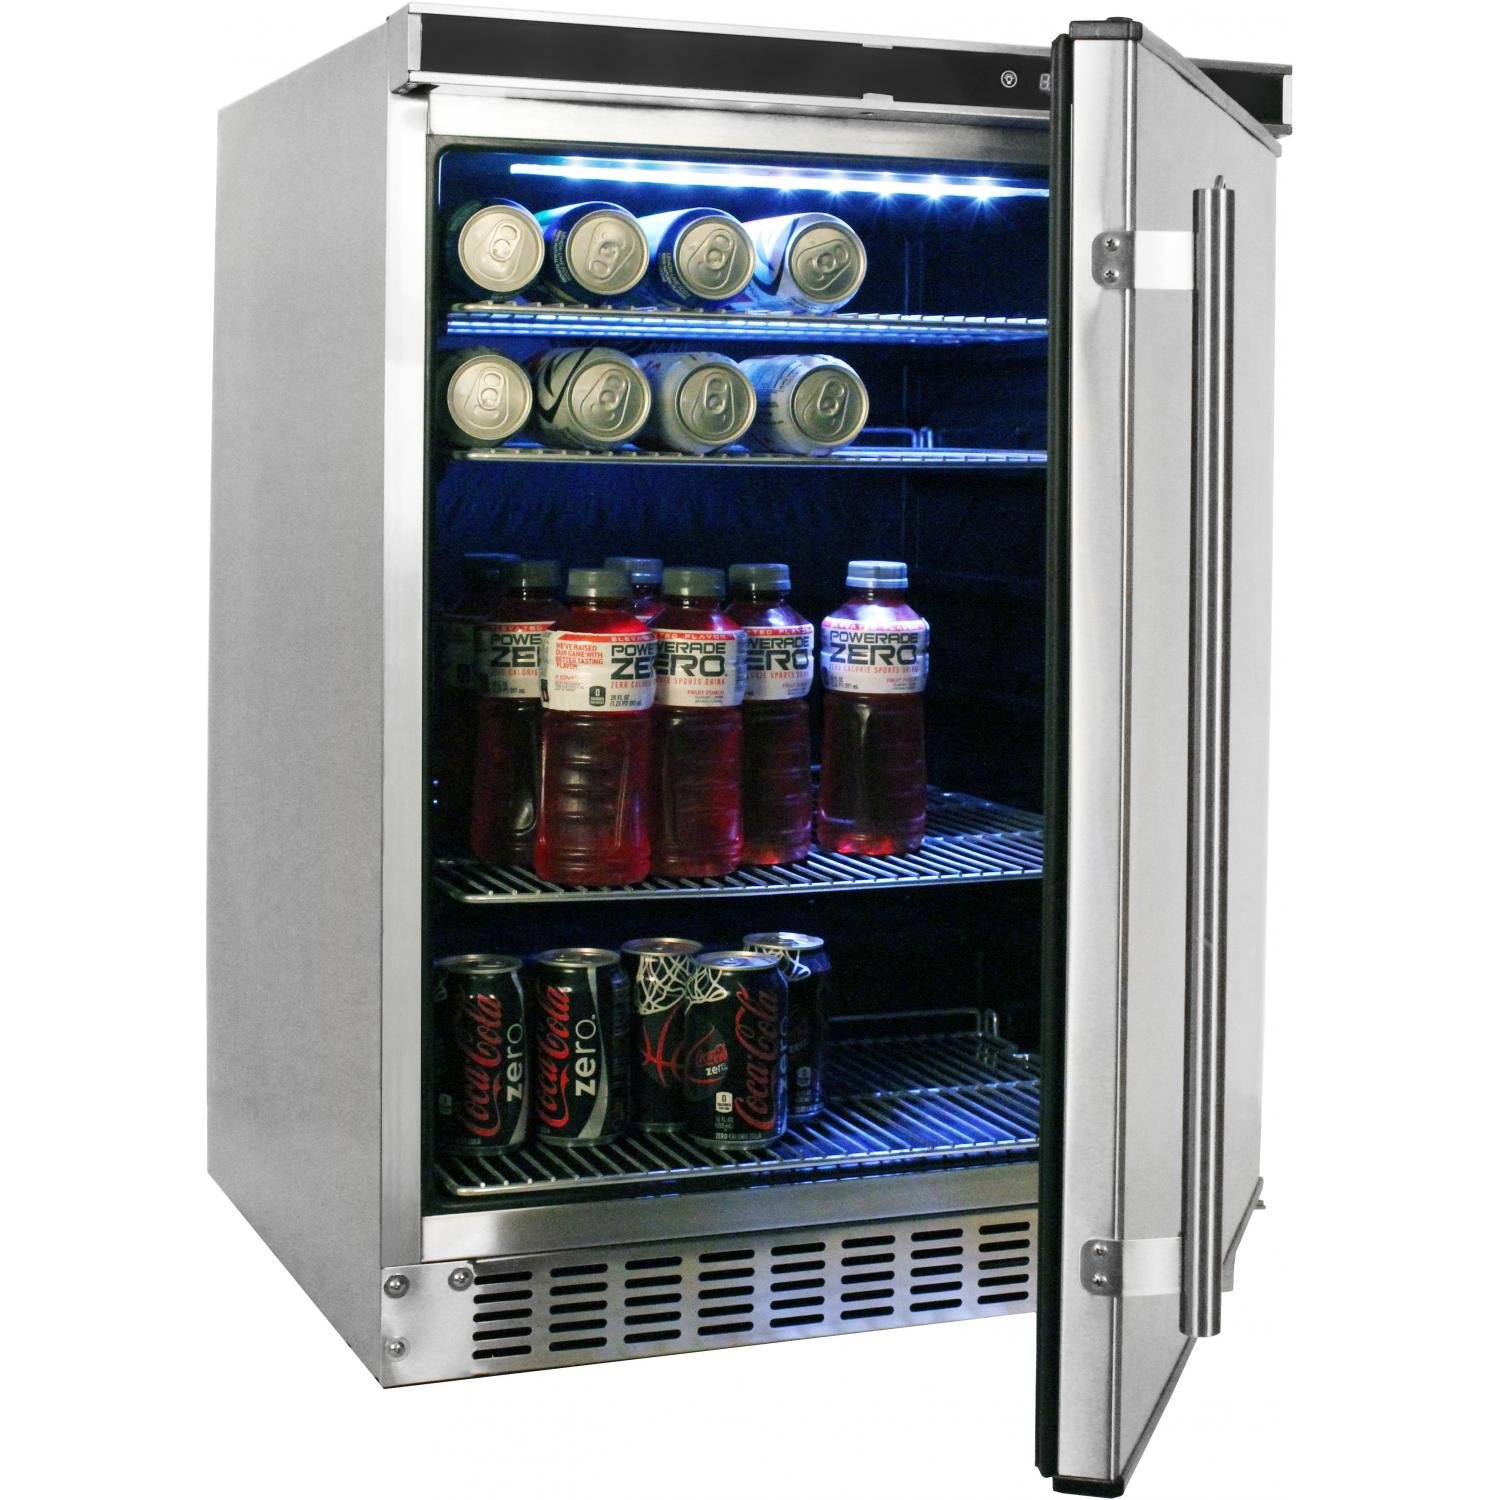 4 danby dar017a2bdd compact all - Danby Mini Fridge